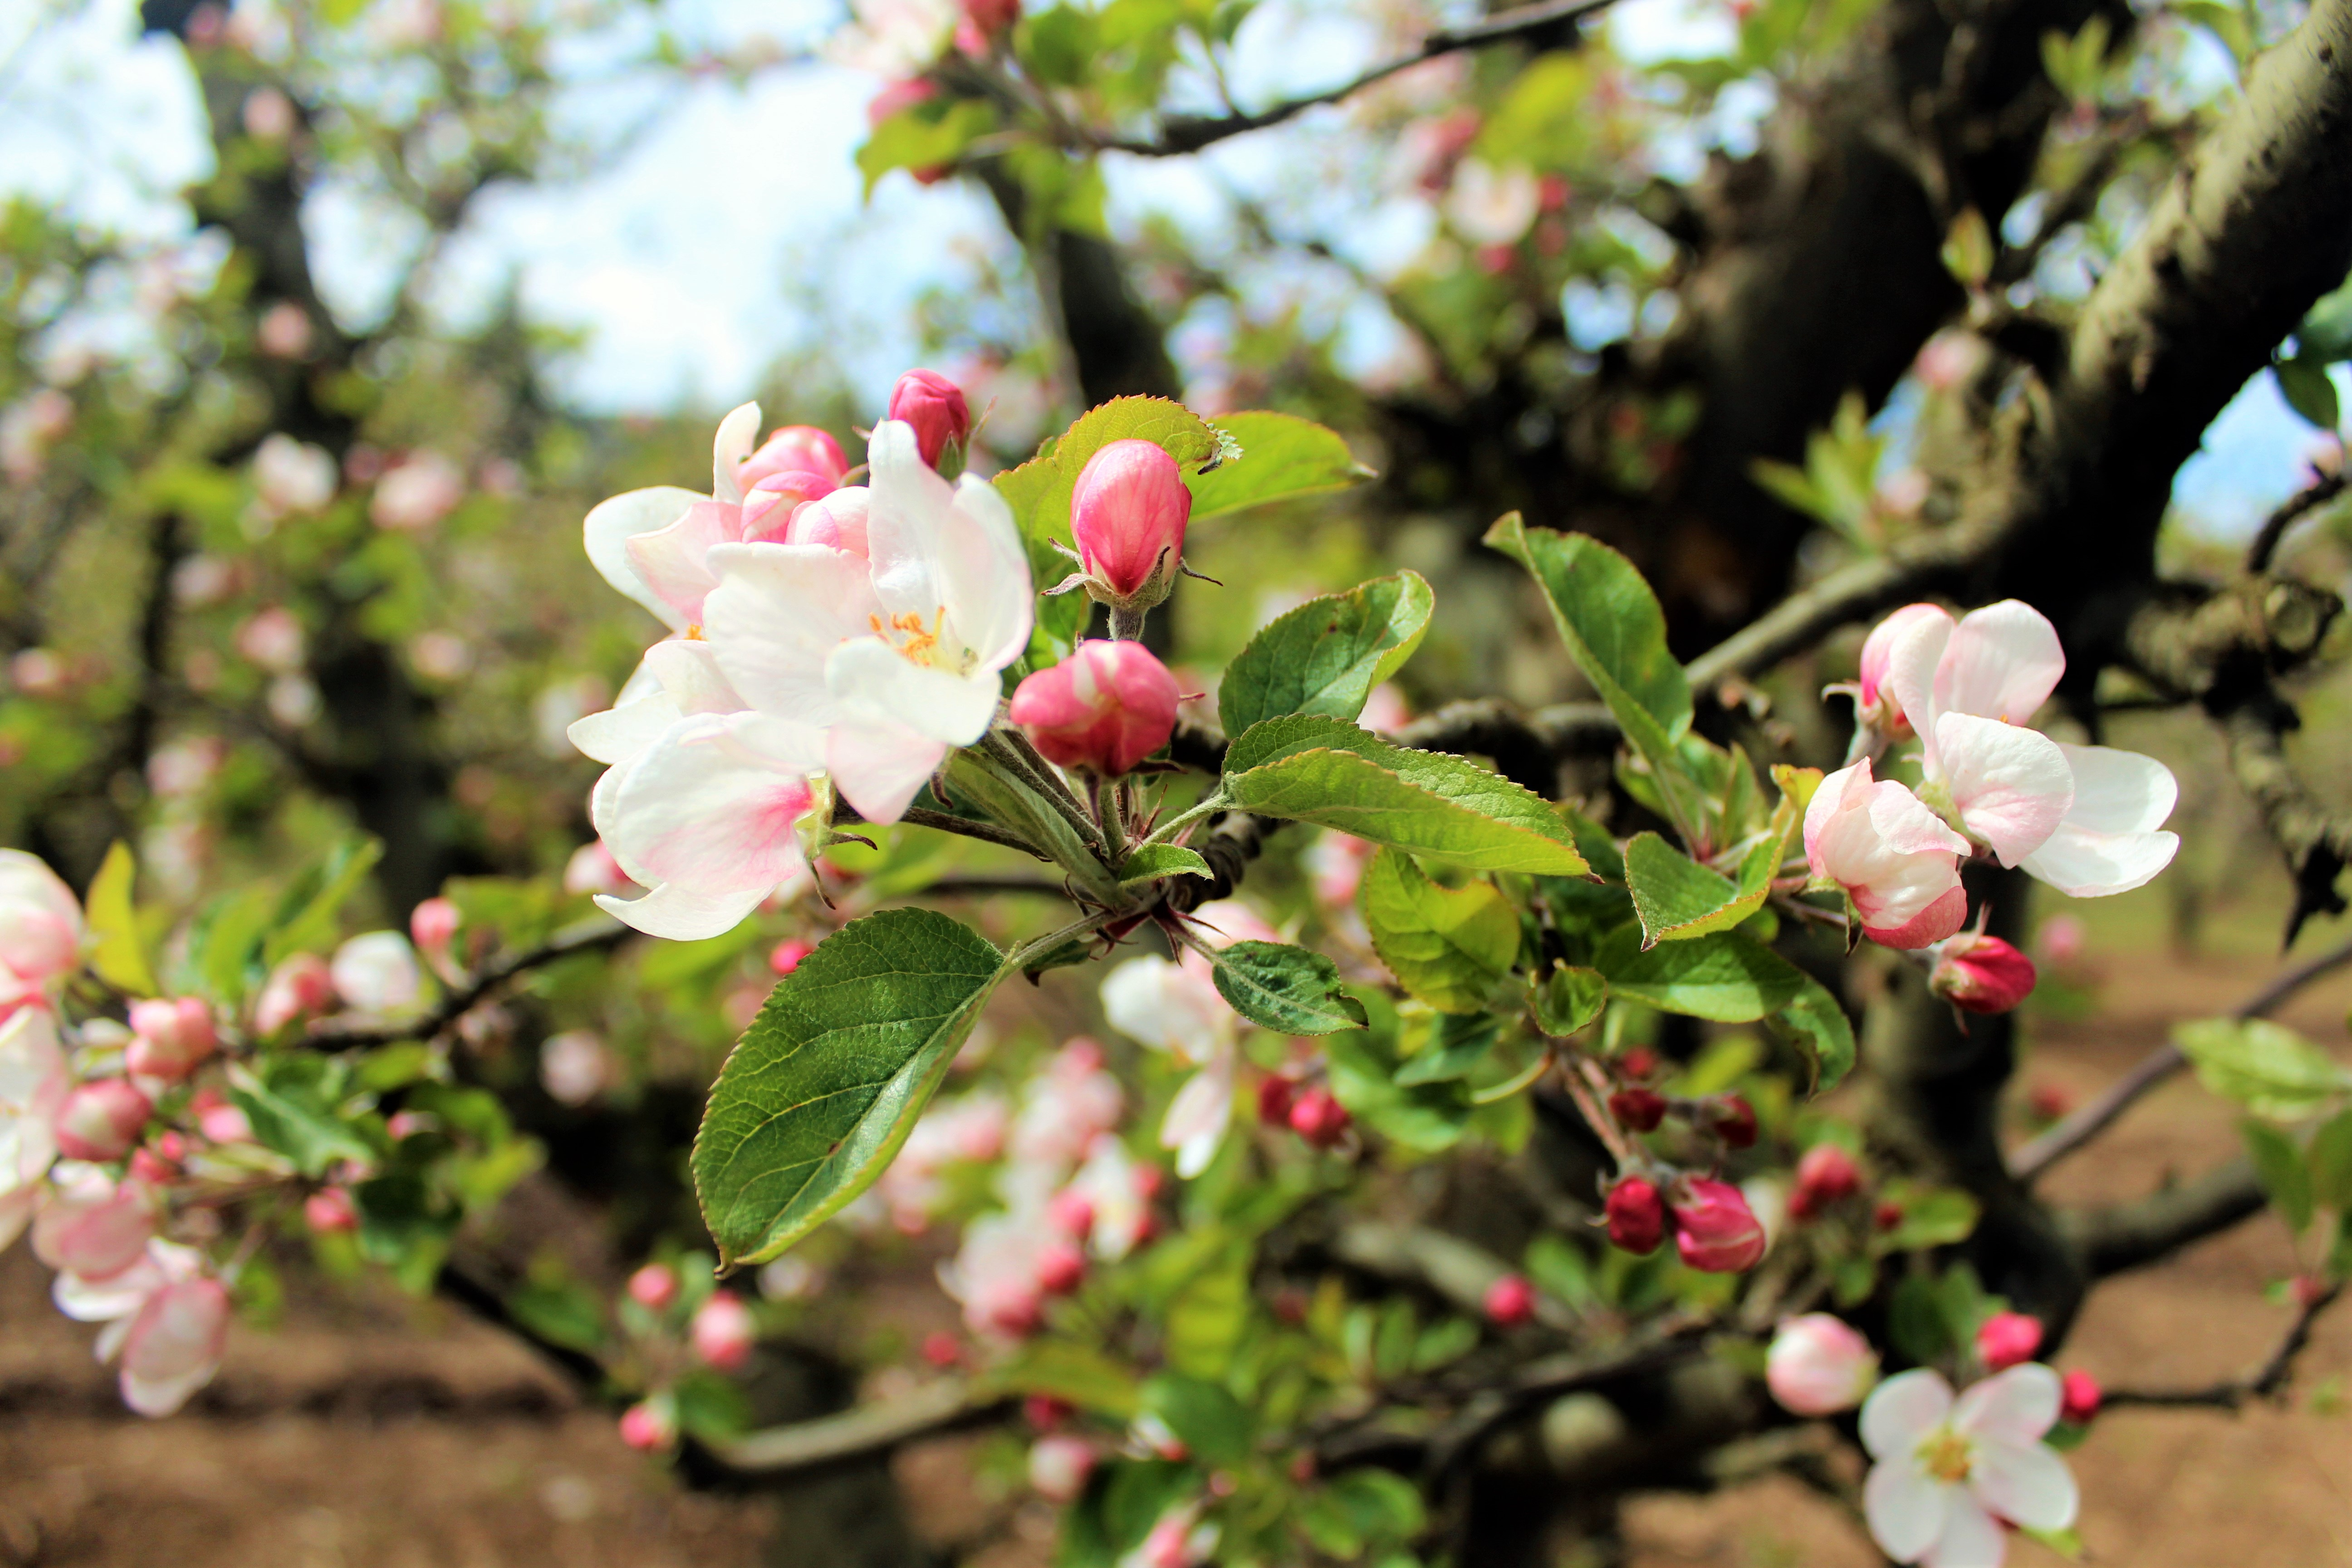 Apple Blossoms, photo by Carrie Uffindell